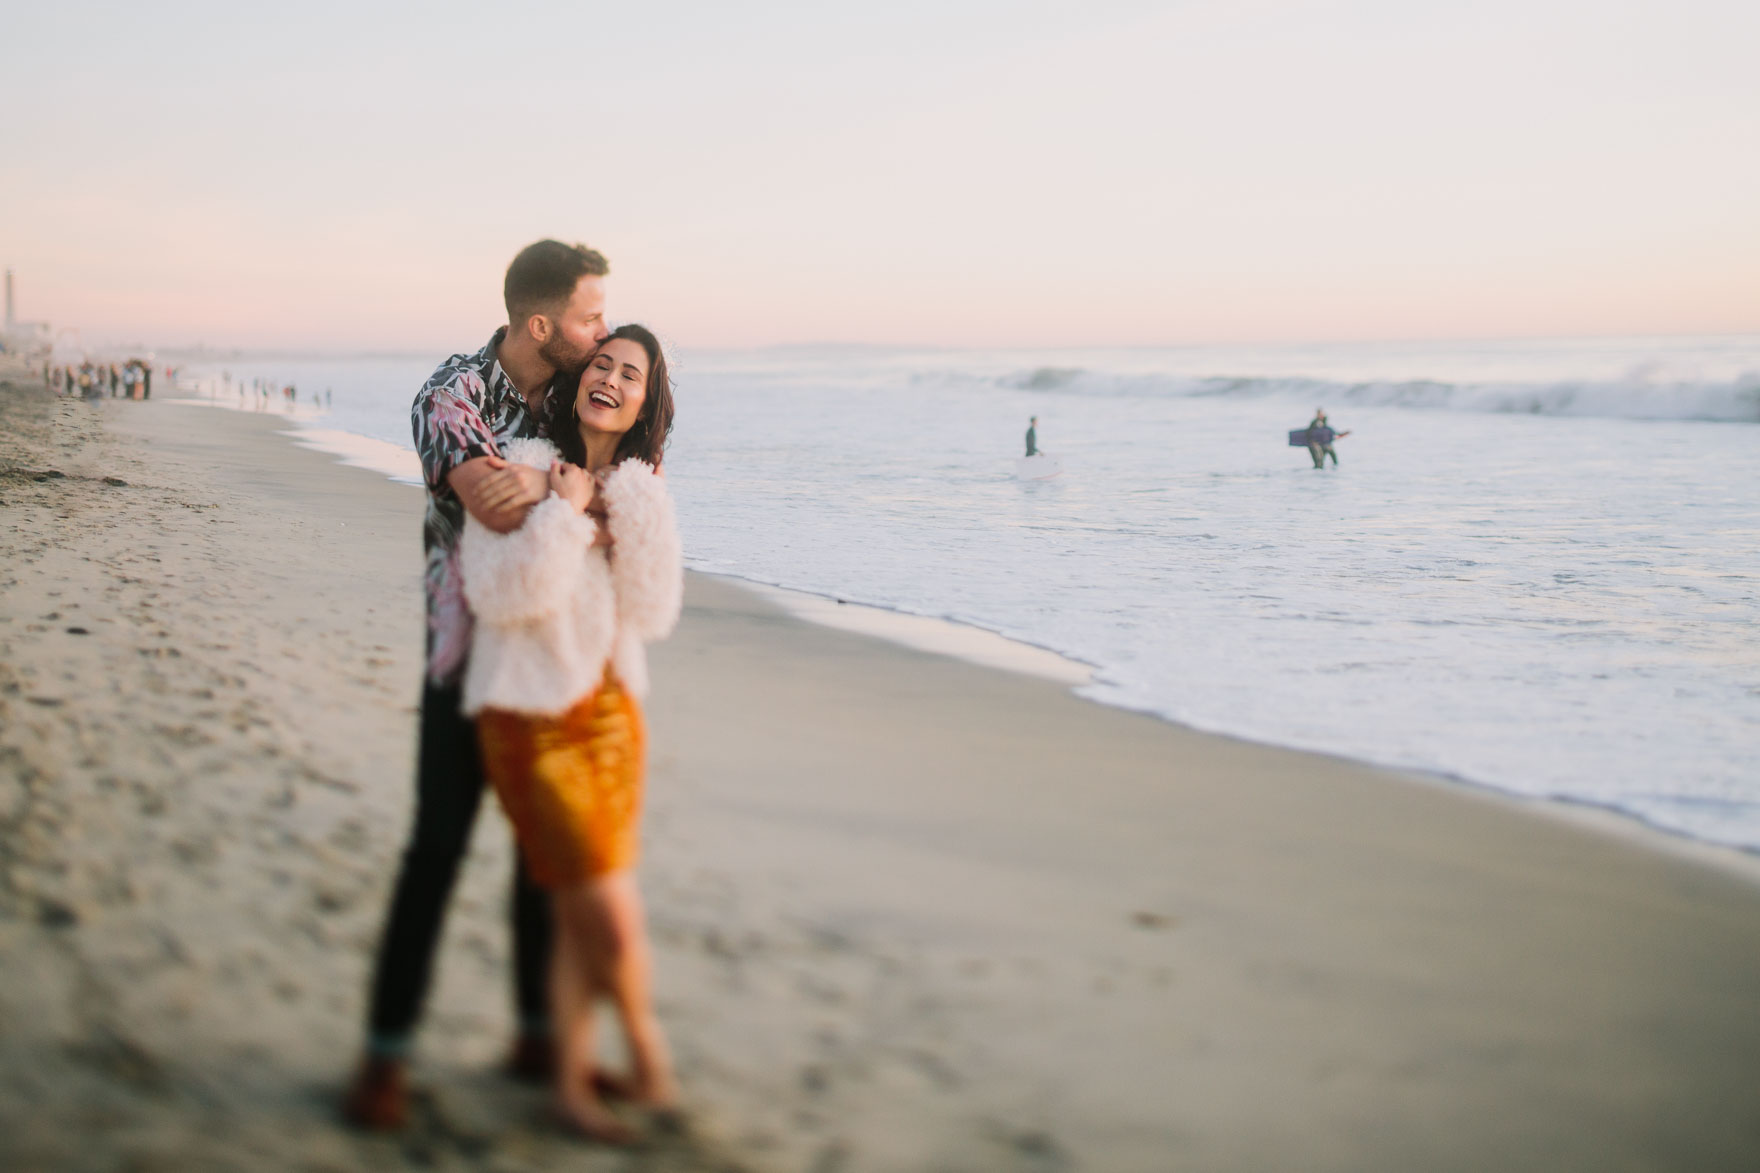 A Beachy Neighborhood Frolic – Photo by Let's Frolic Together